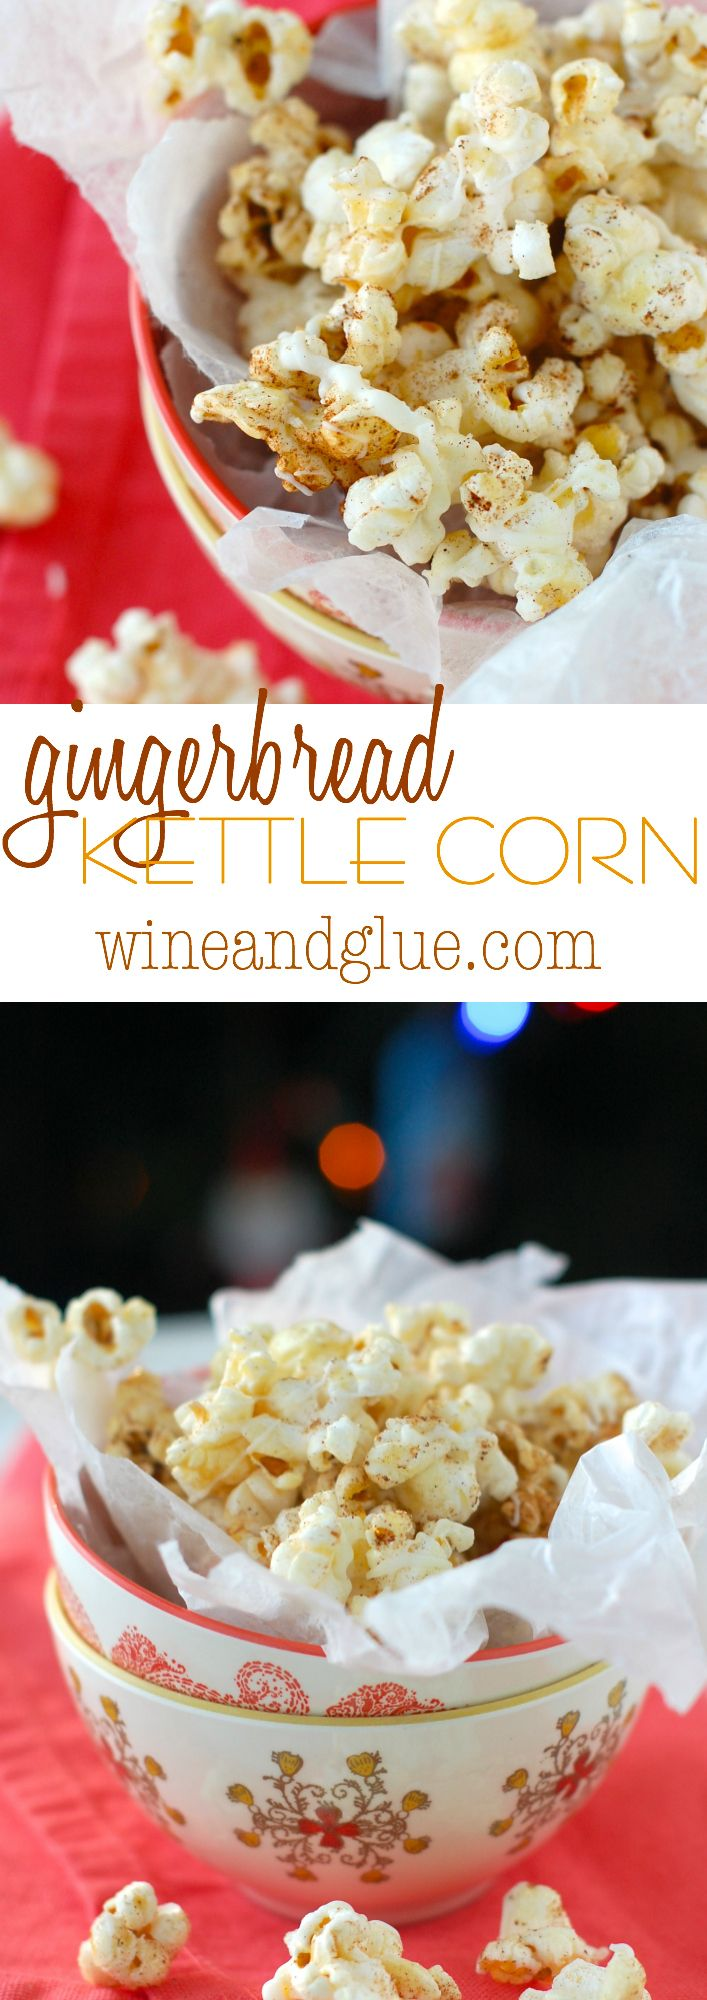 Gingerbread Kettle Corn | Delicious kettle corn flavored with gingerbread and drizzled with white chocolate